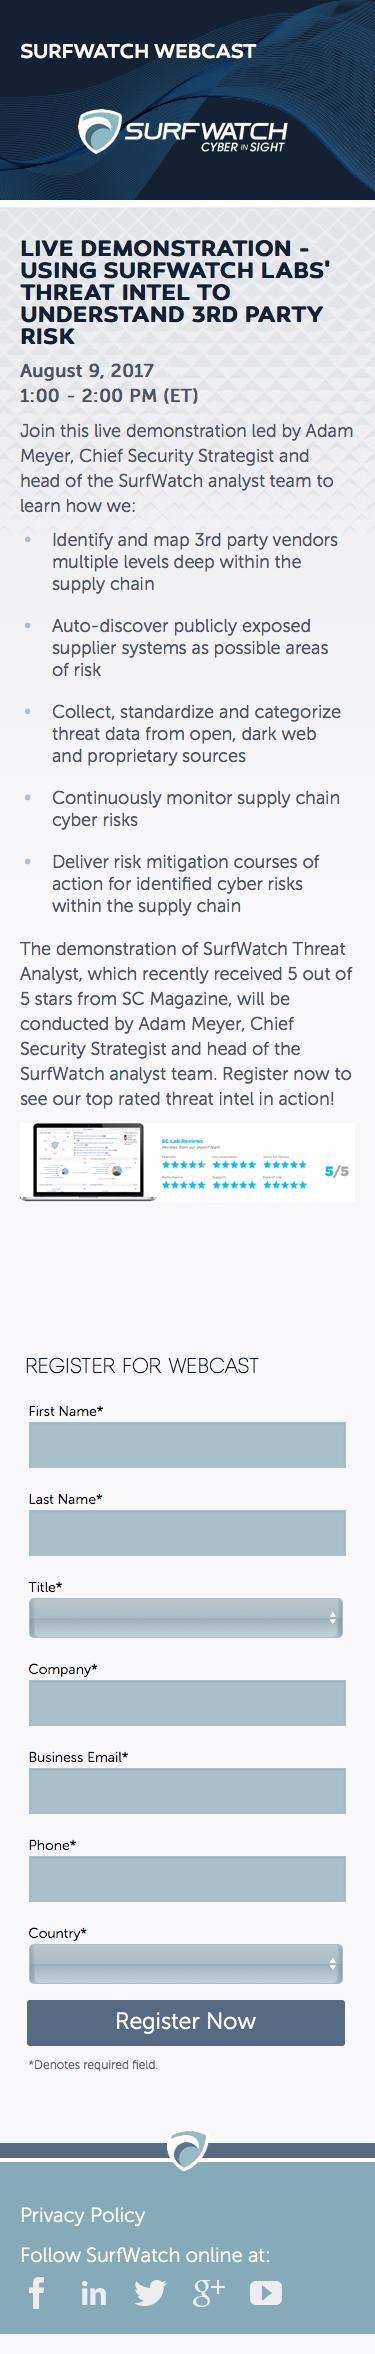 Screenshot of surfwatchlabs.com - Using SurfWatch Labs' Threat Intel to Understand 3rd Party Risk - captured July 12, 2017